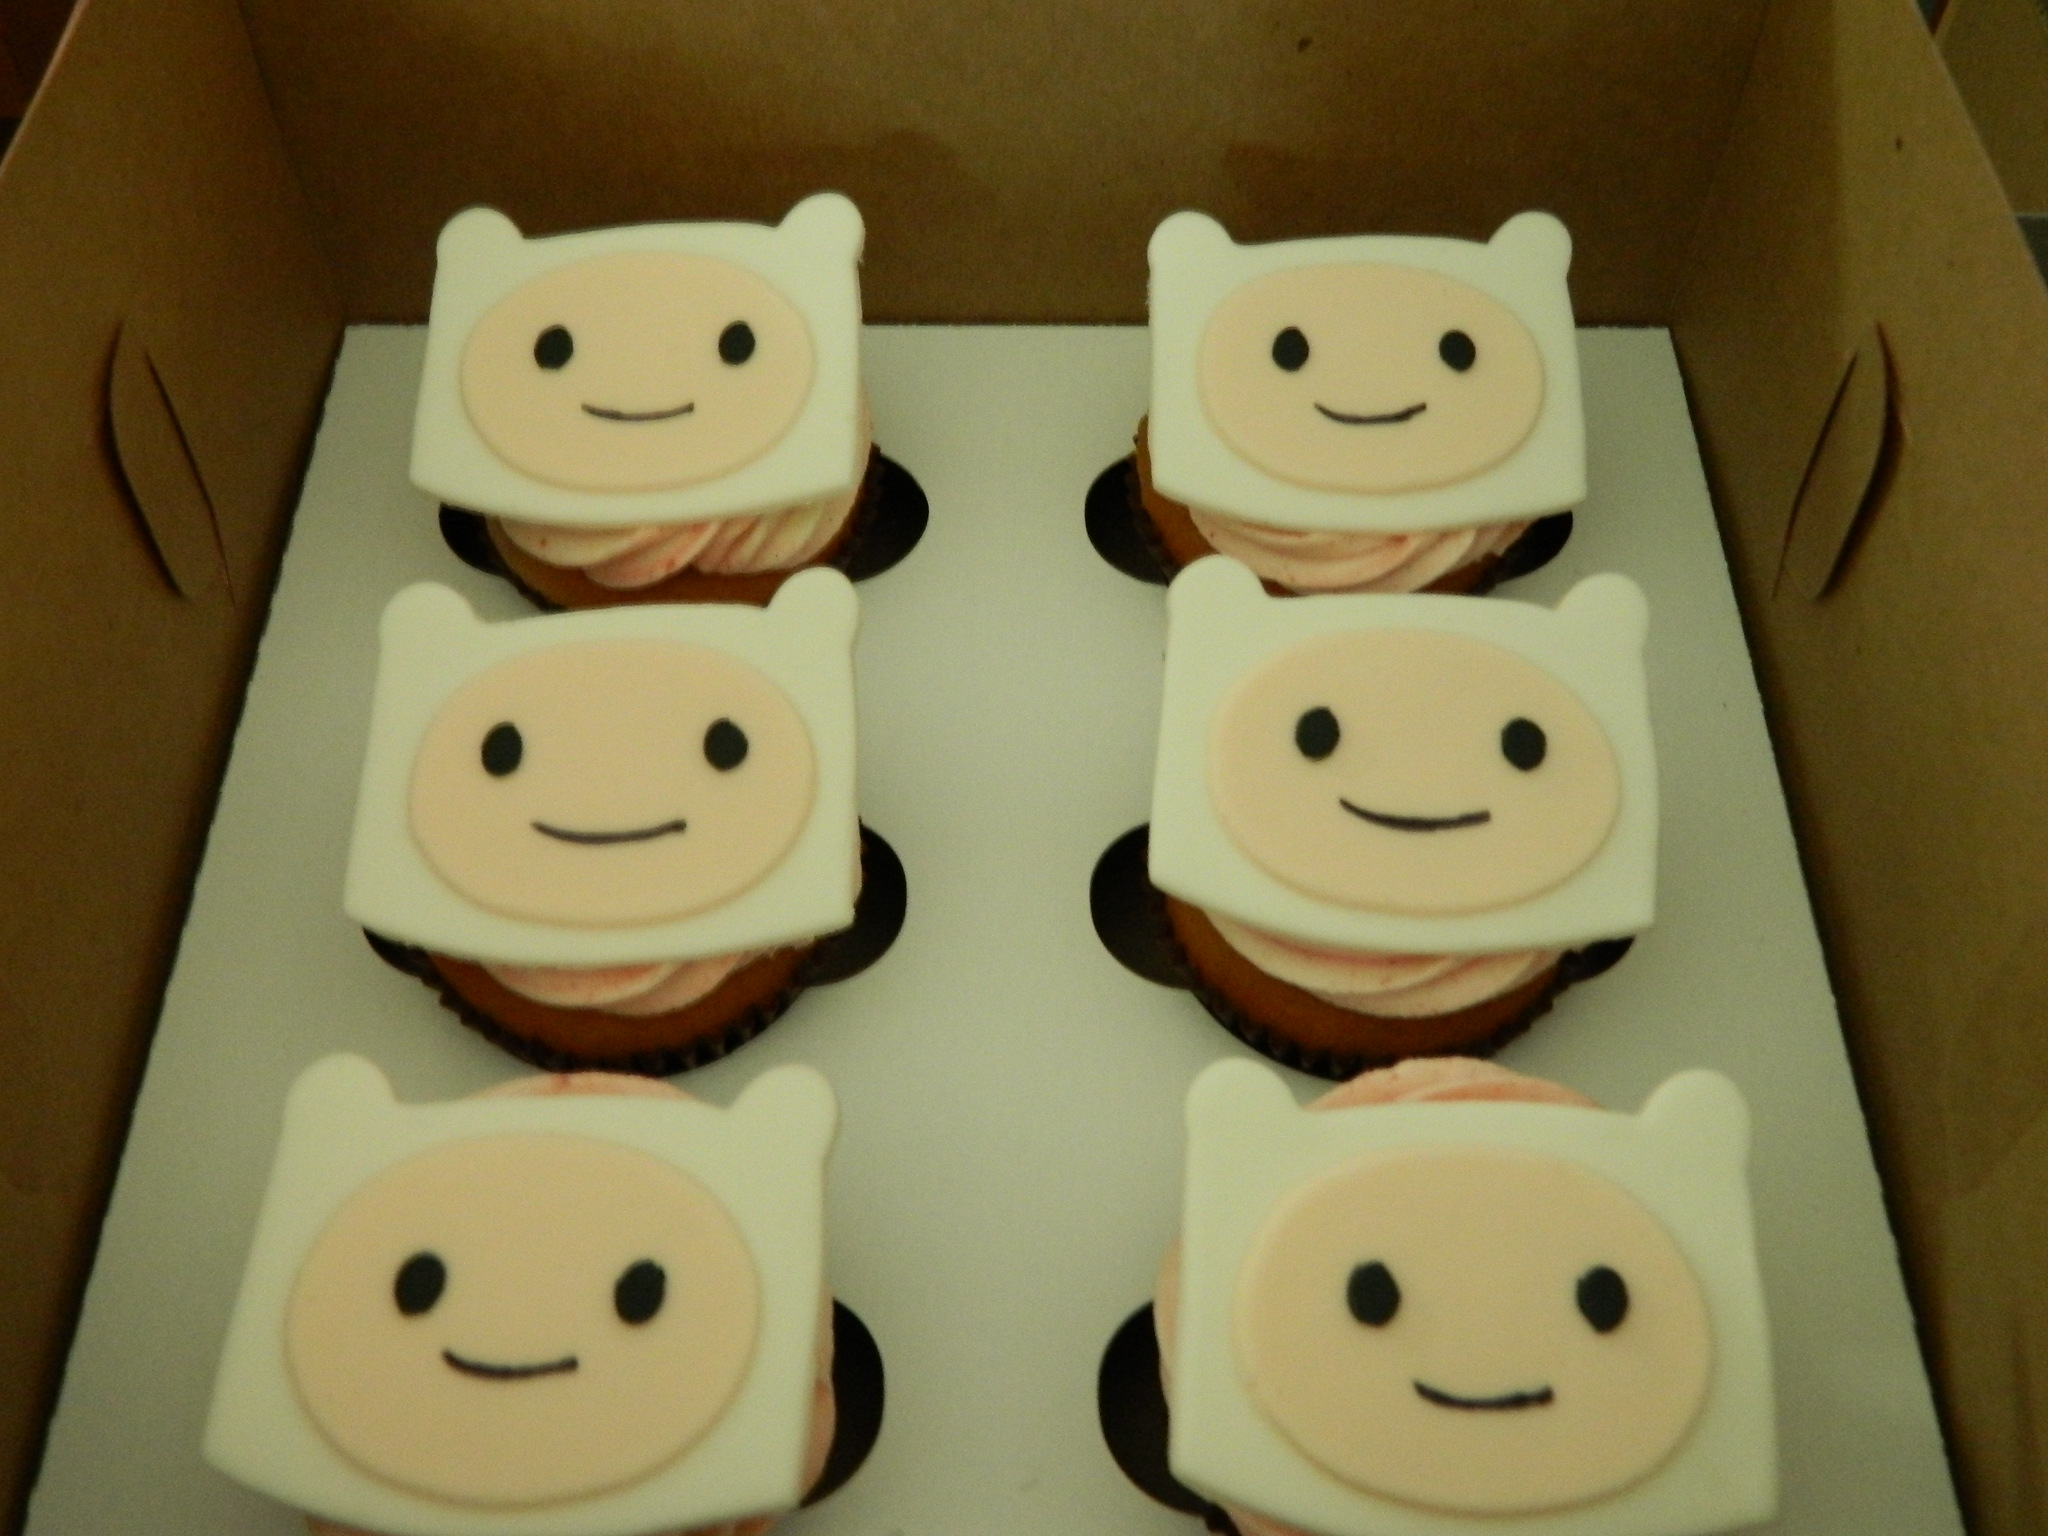 Adventure Time (Liam) themed custom cupcakes